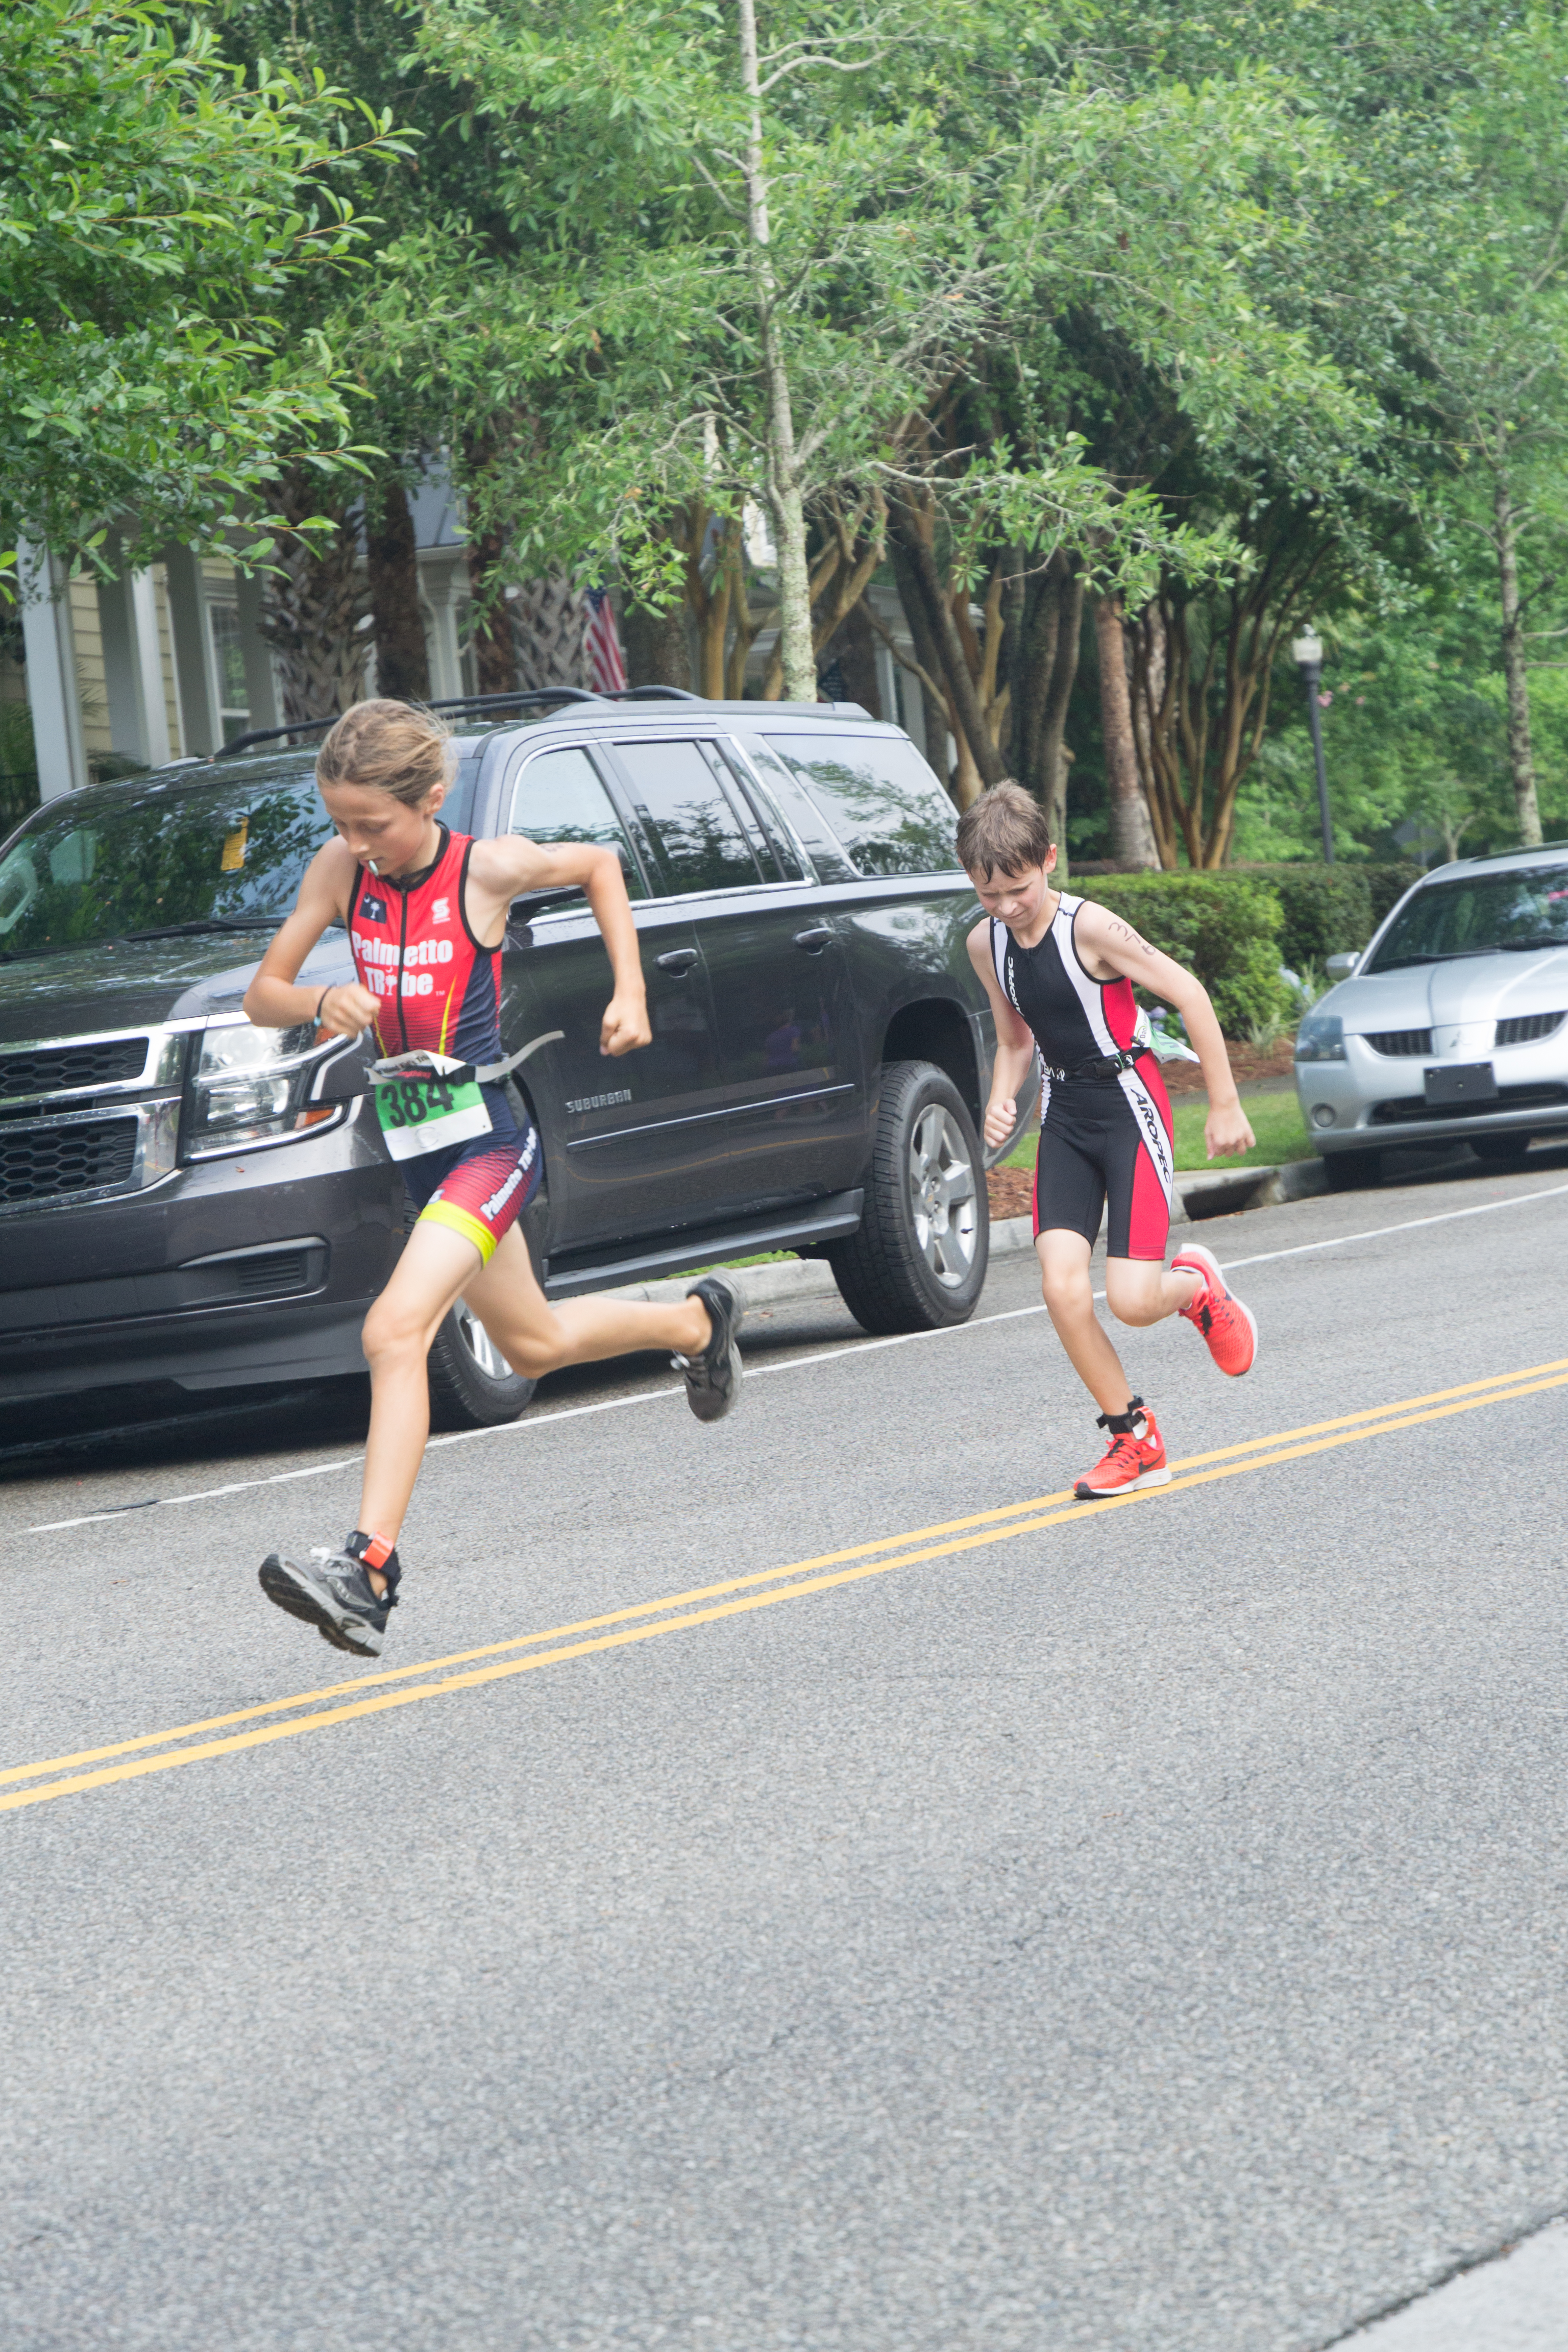 Ninety-seven young athletes first swam laps at Pierce Park Pool and then took to the streets of Daniel Island to bike and run in this year's event!